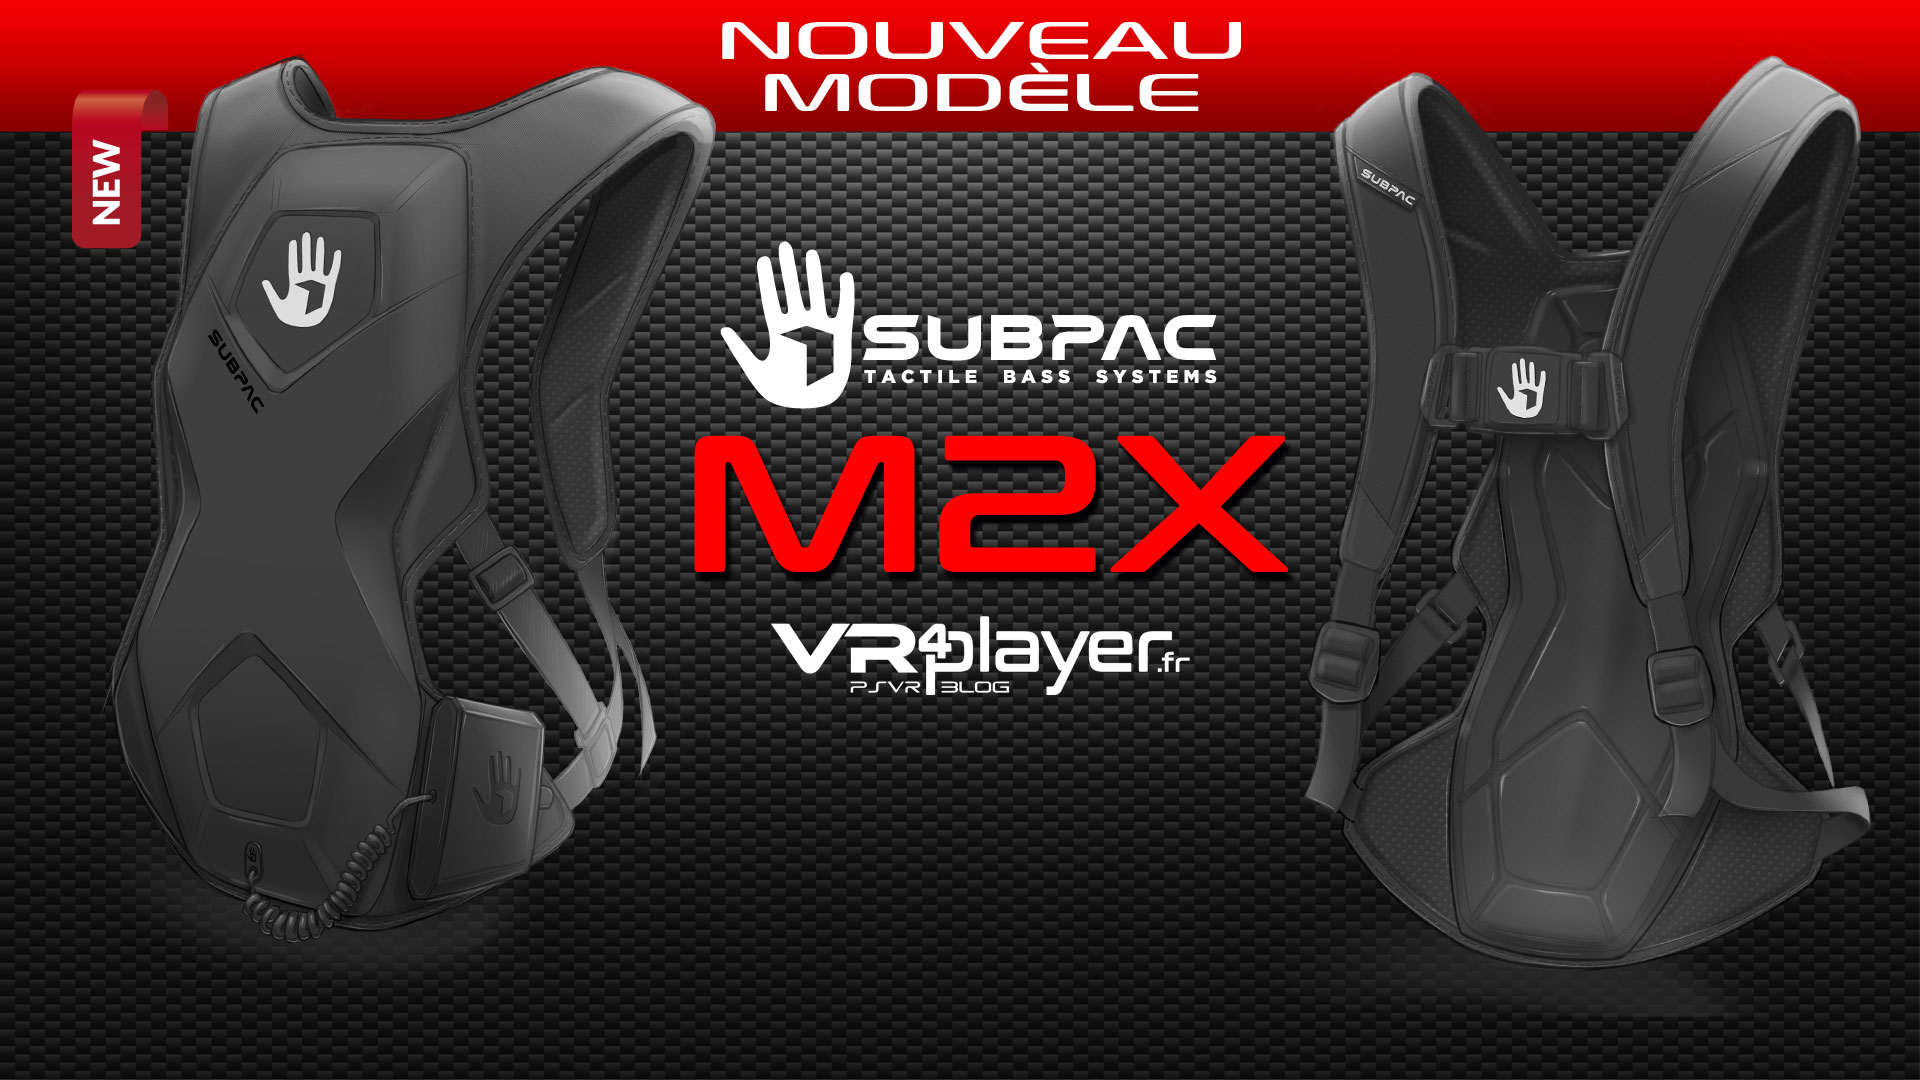 Subpac M2X VR4player.fr